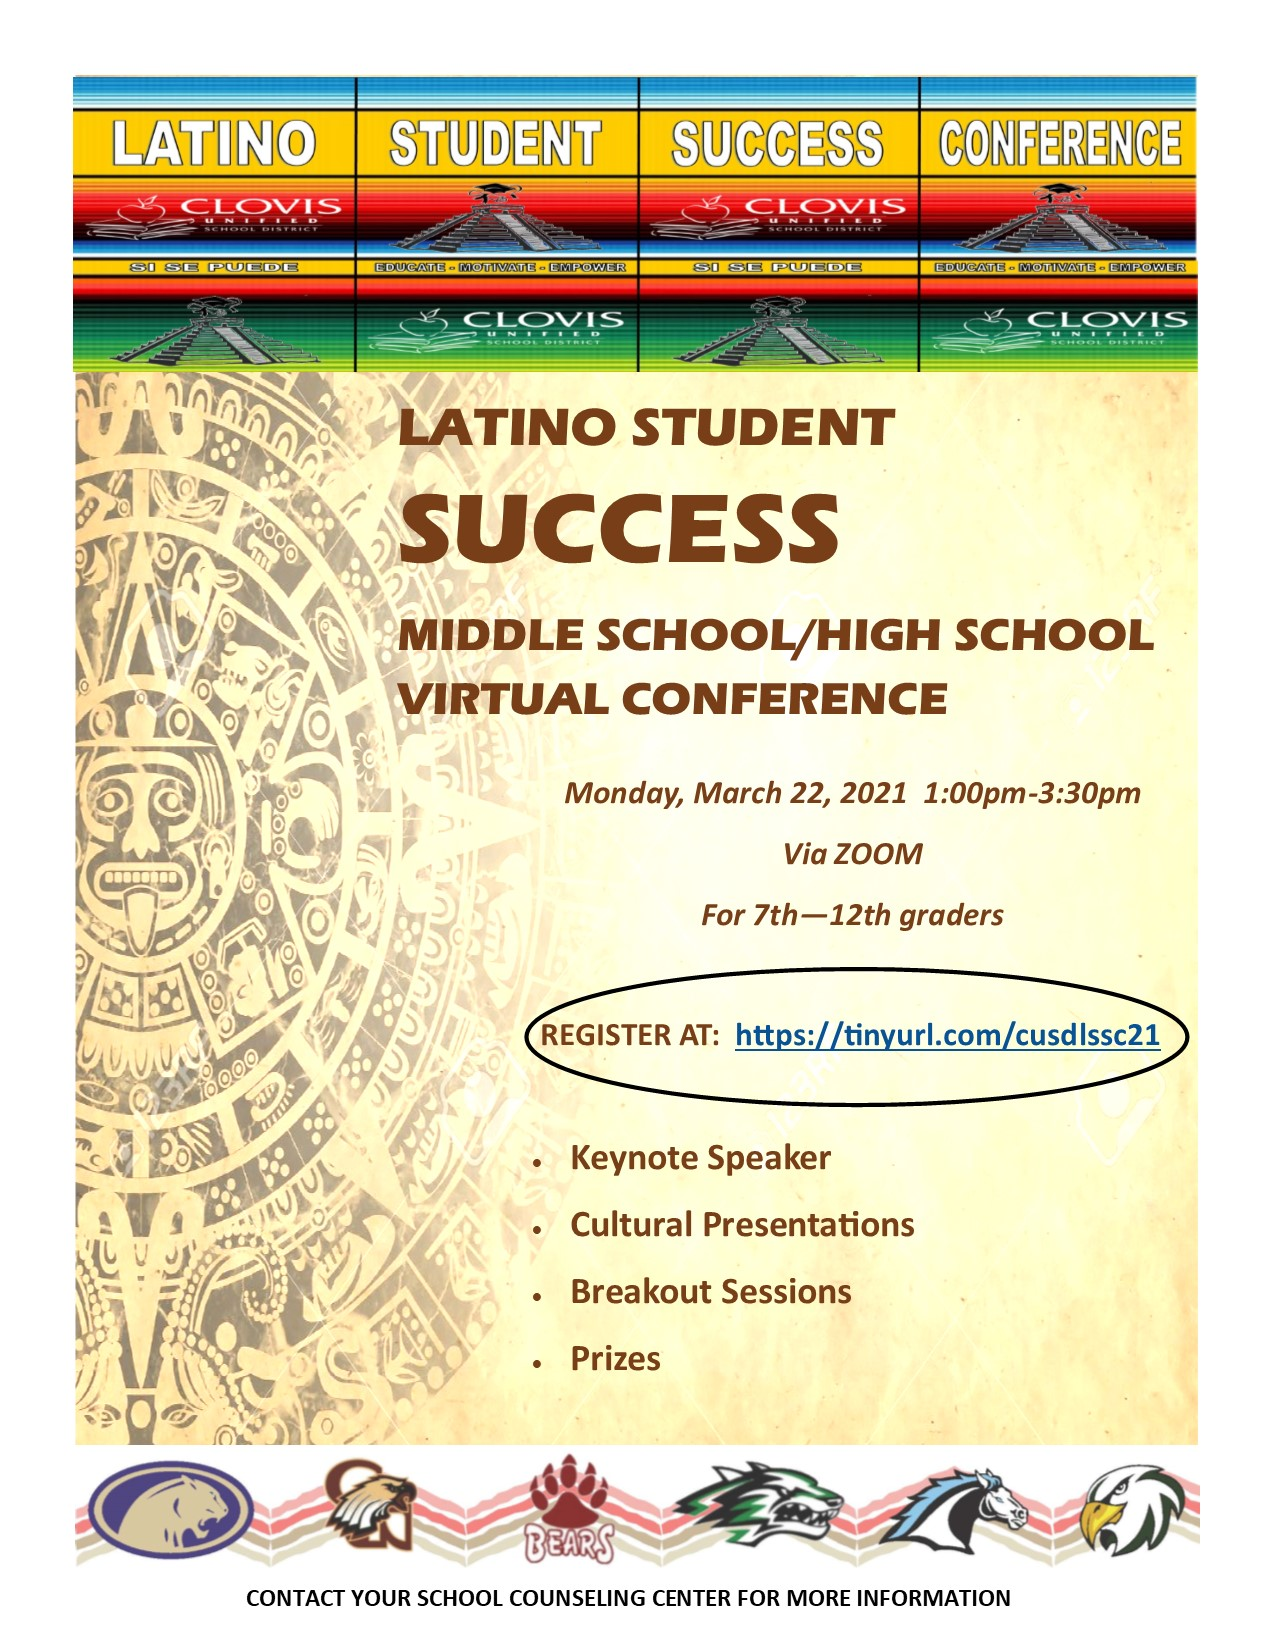 Latino Student Success Conference